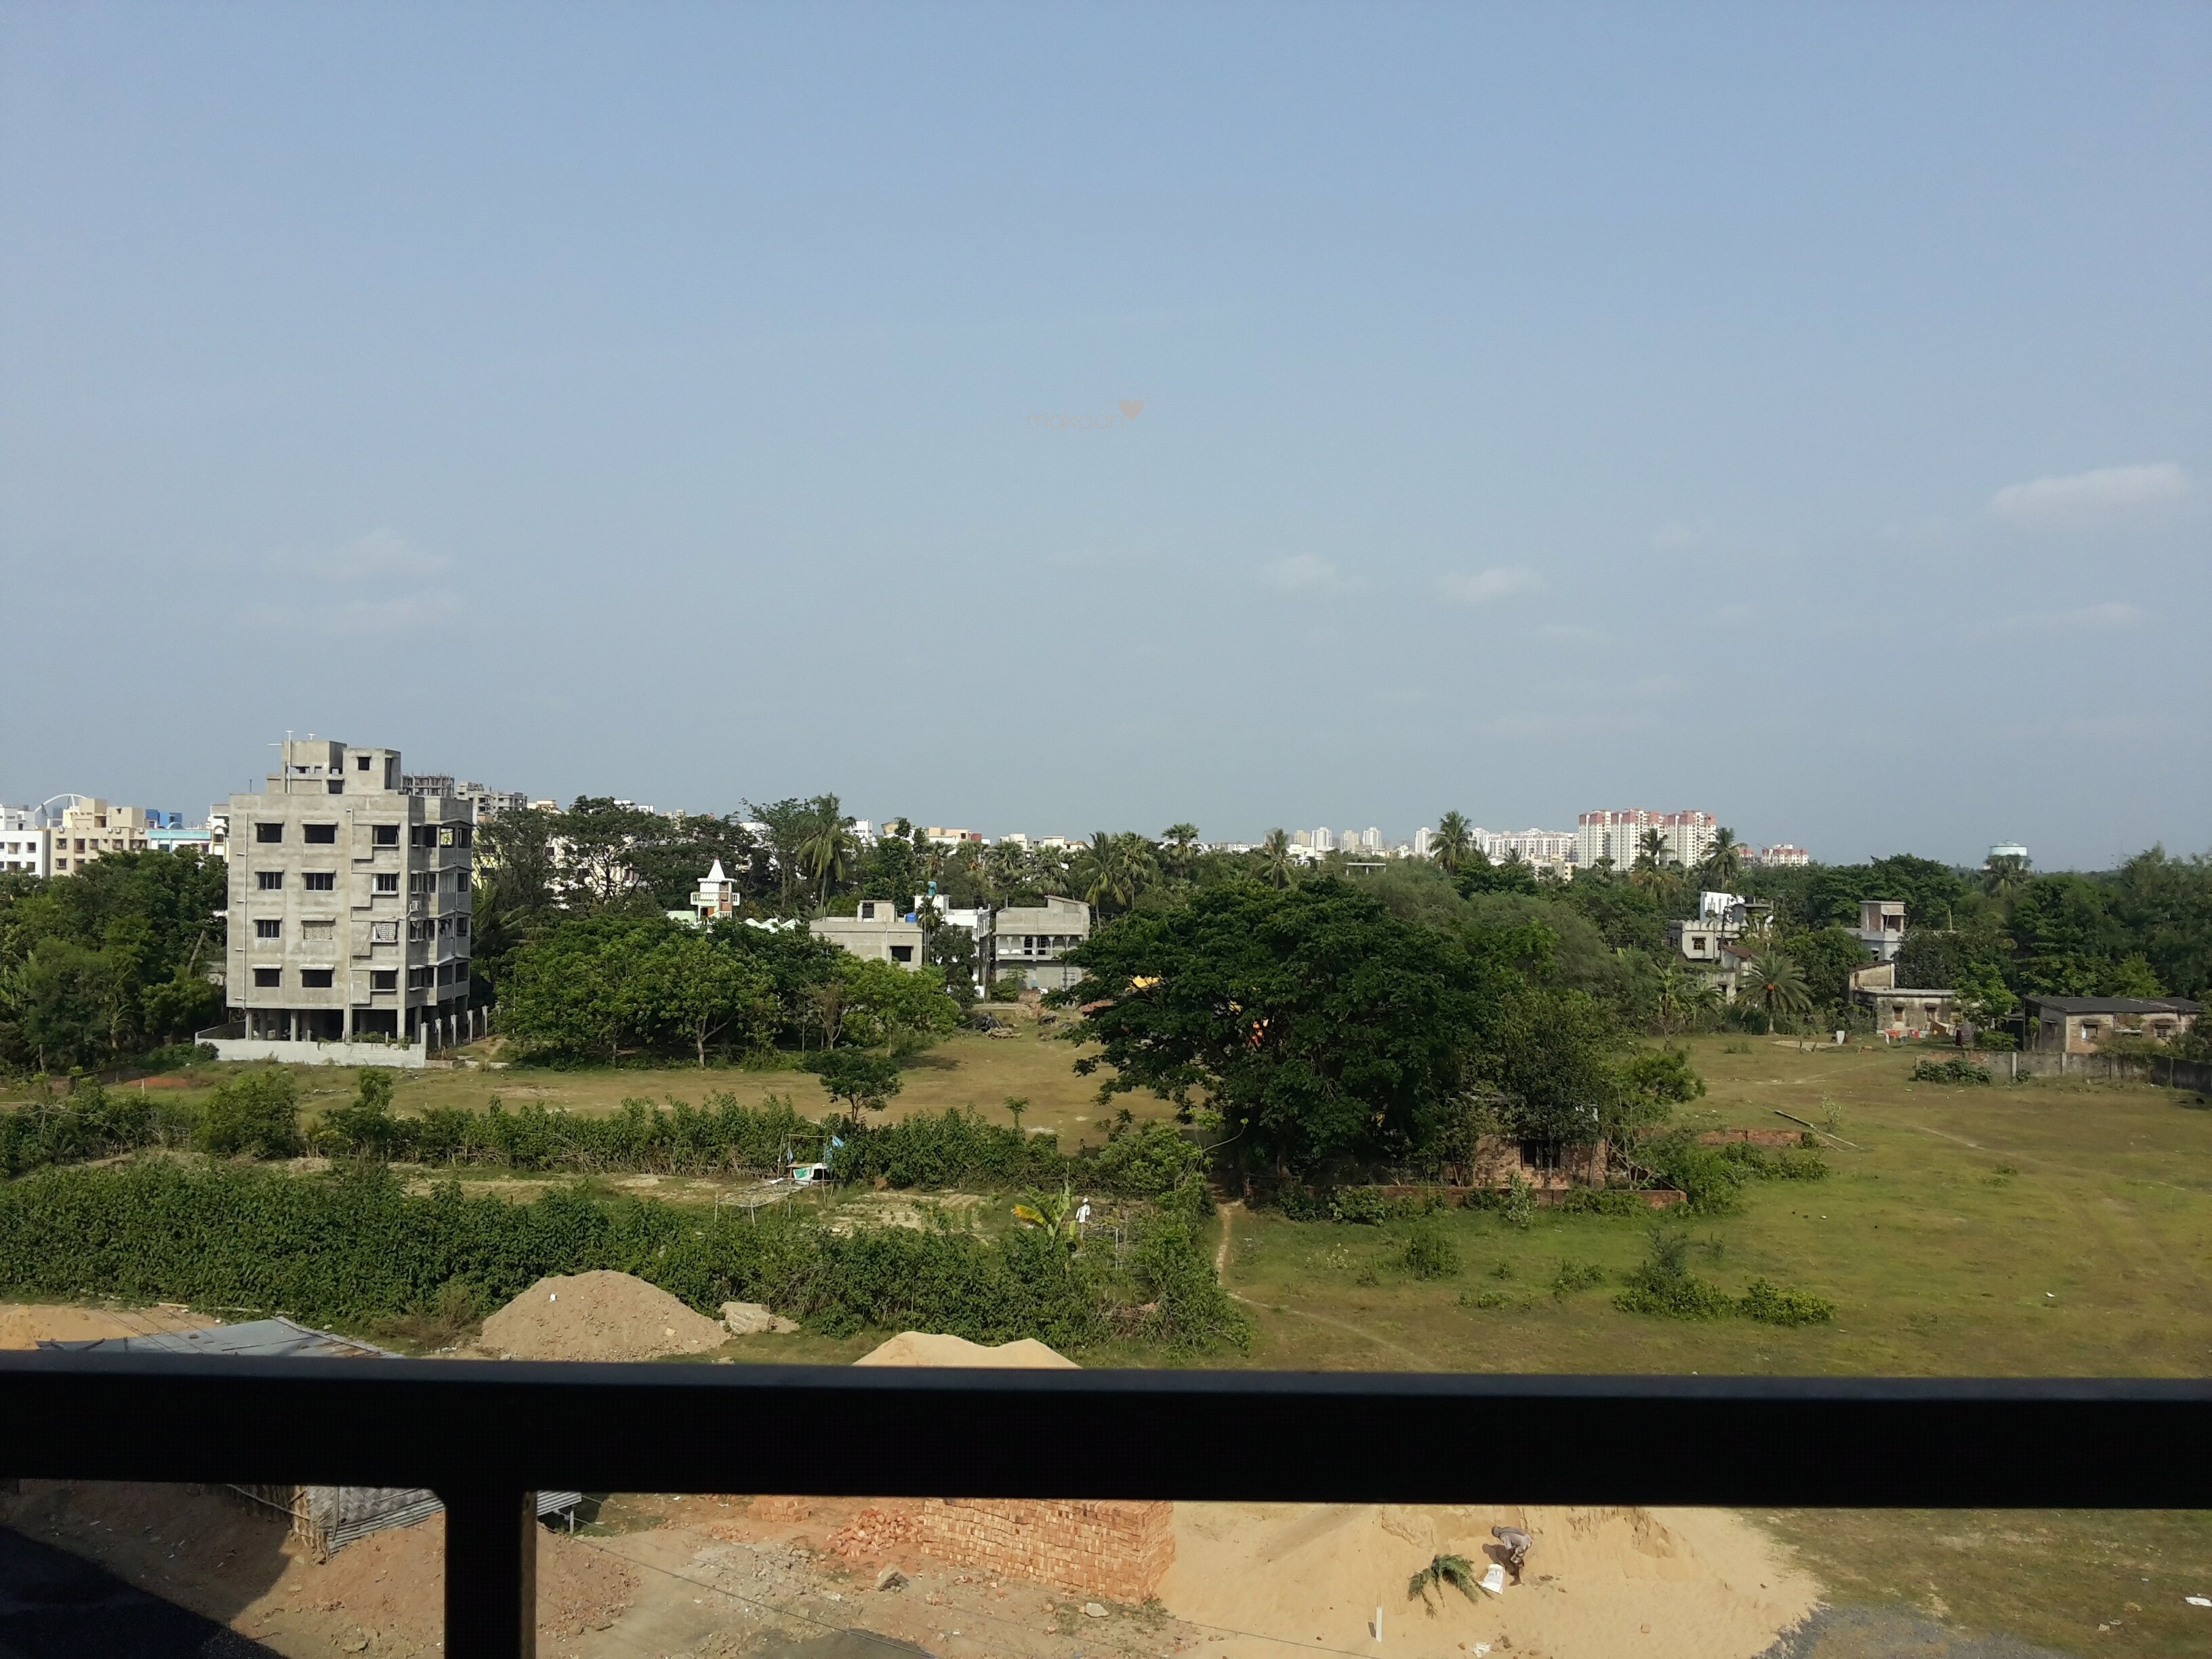 1261 sq ft 3BHK 3BHK+2T (1,261 sq ft) Property By Proptiger In Grande, New Town